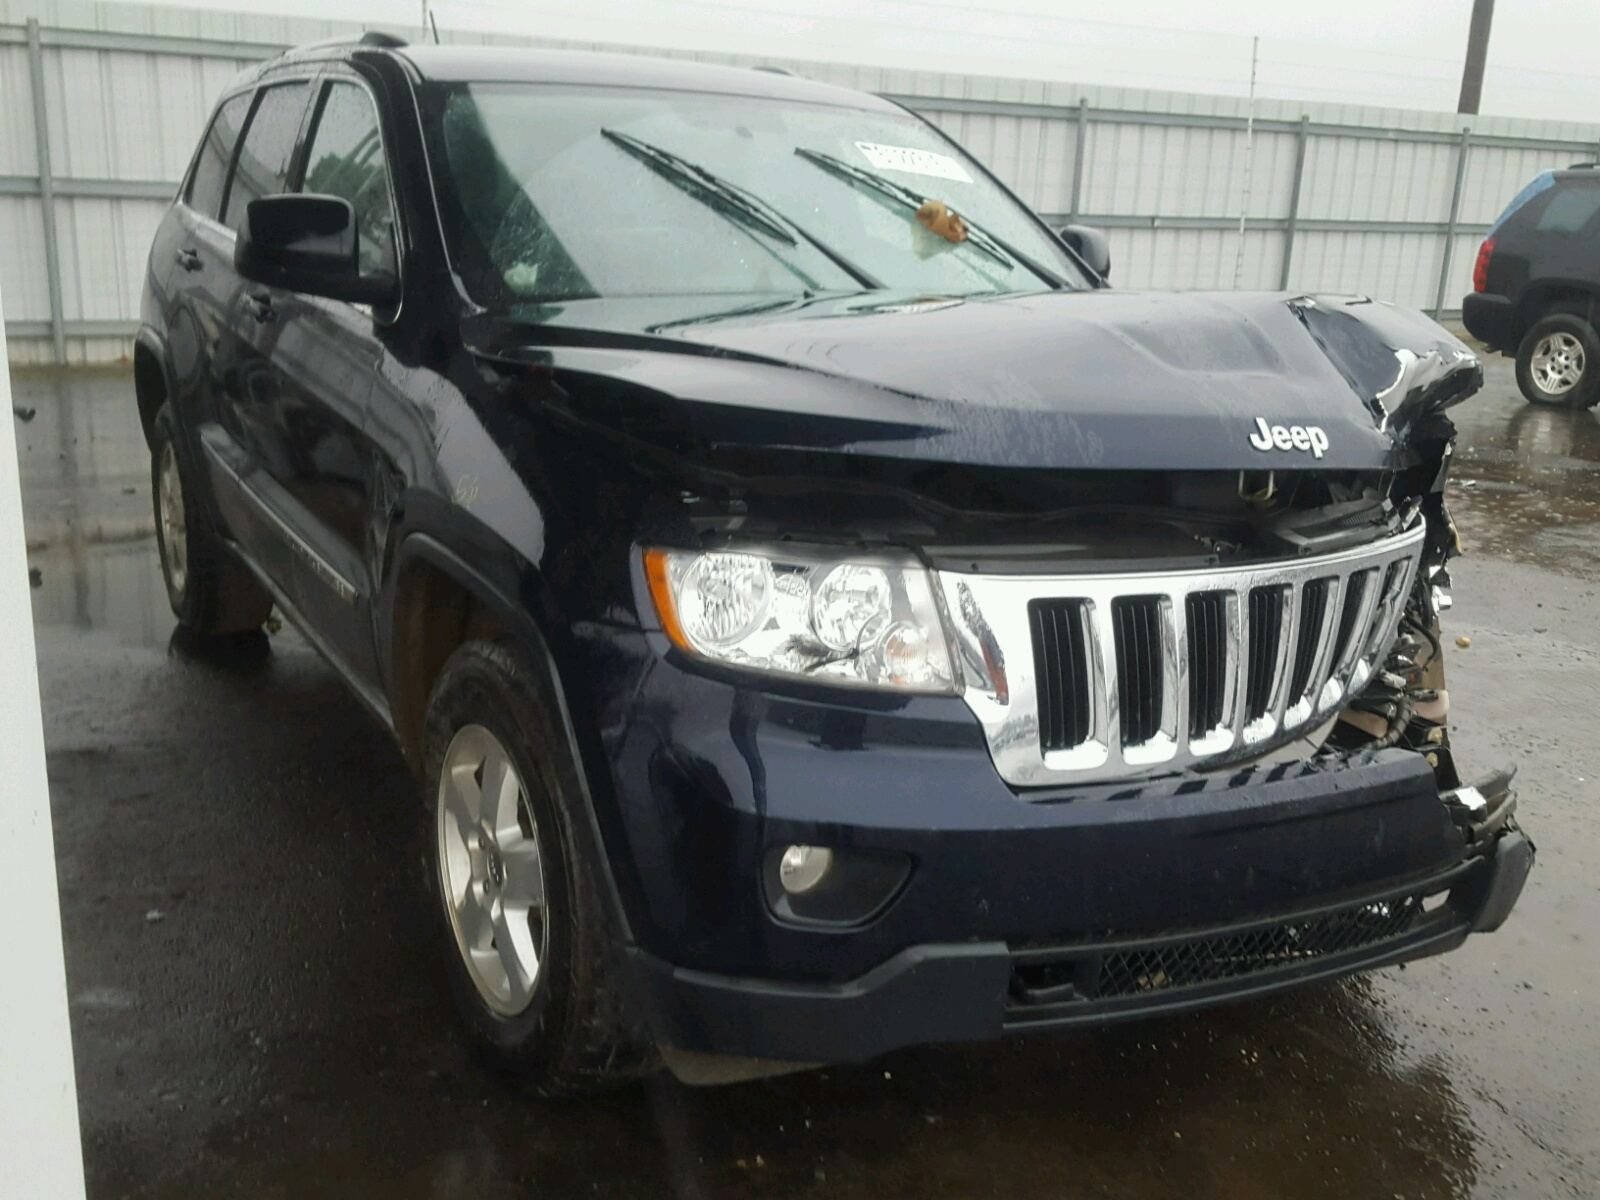 Auto Auction Ended on VIN 1C4PJMCS1GW 2016 JEEP CHEROKEE in